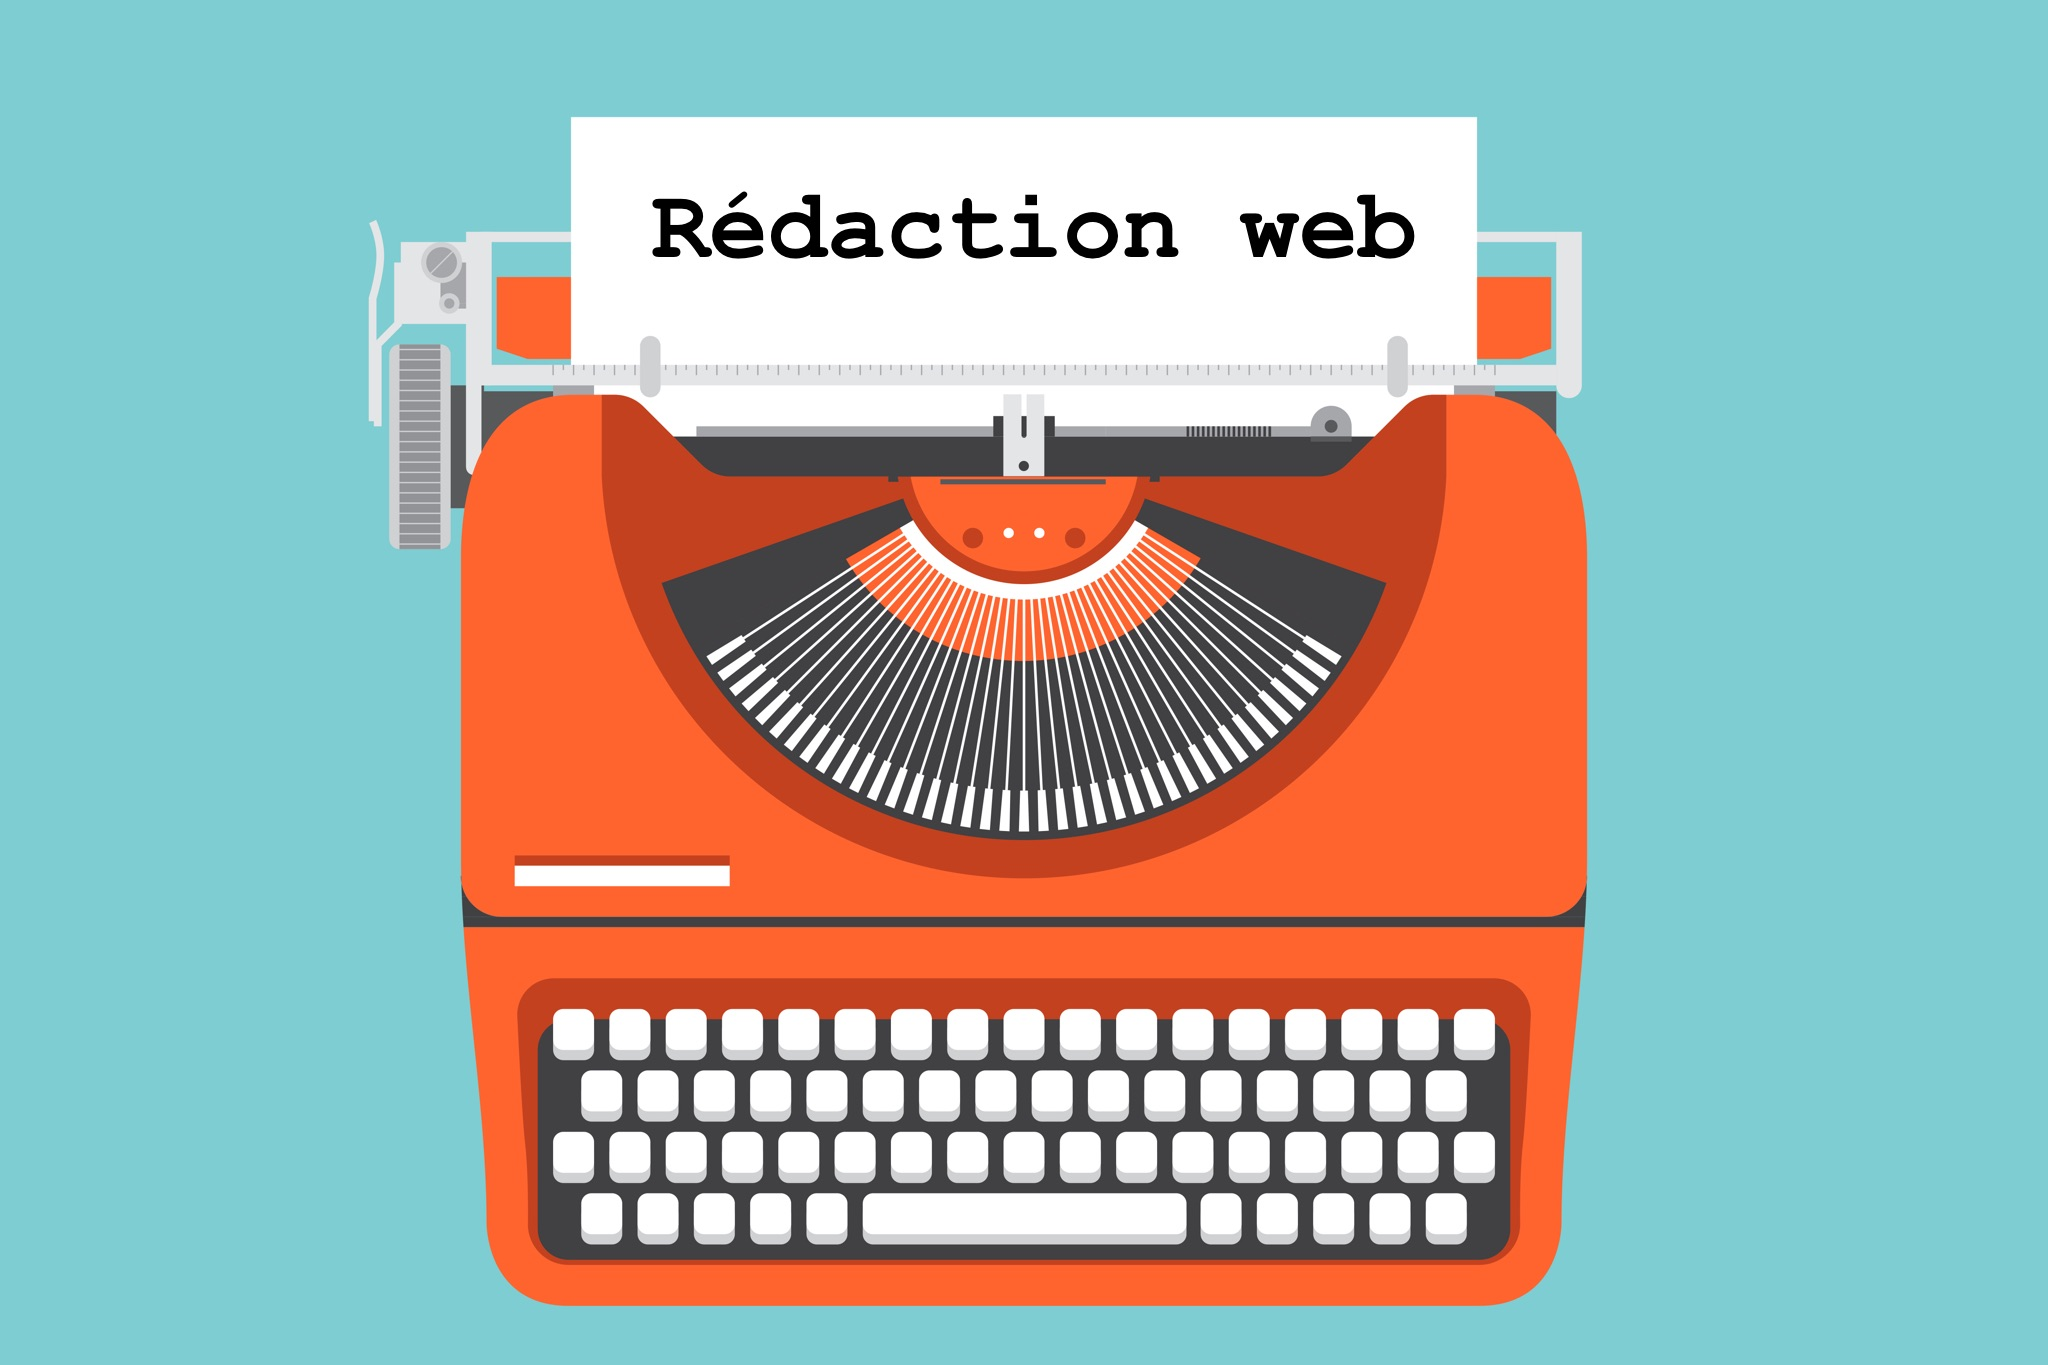 Rédaction web